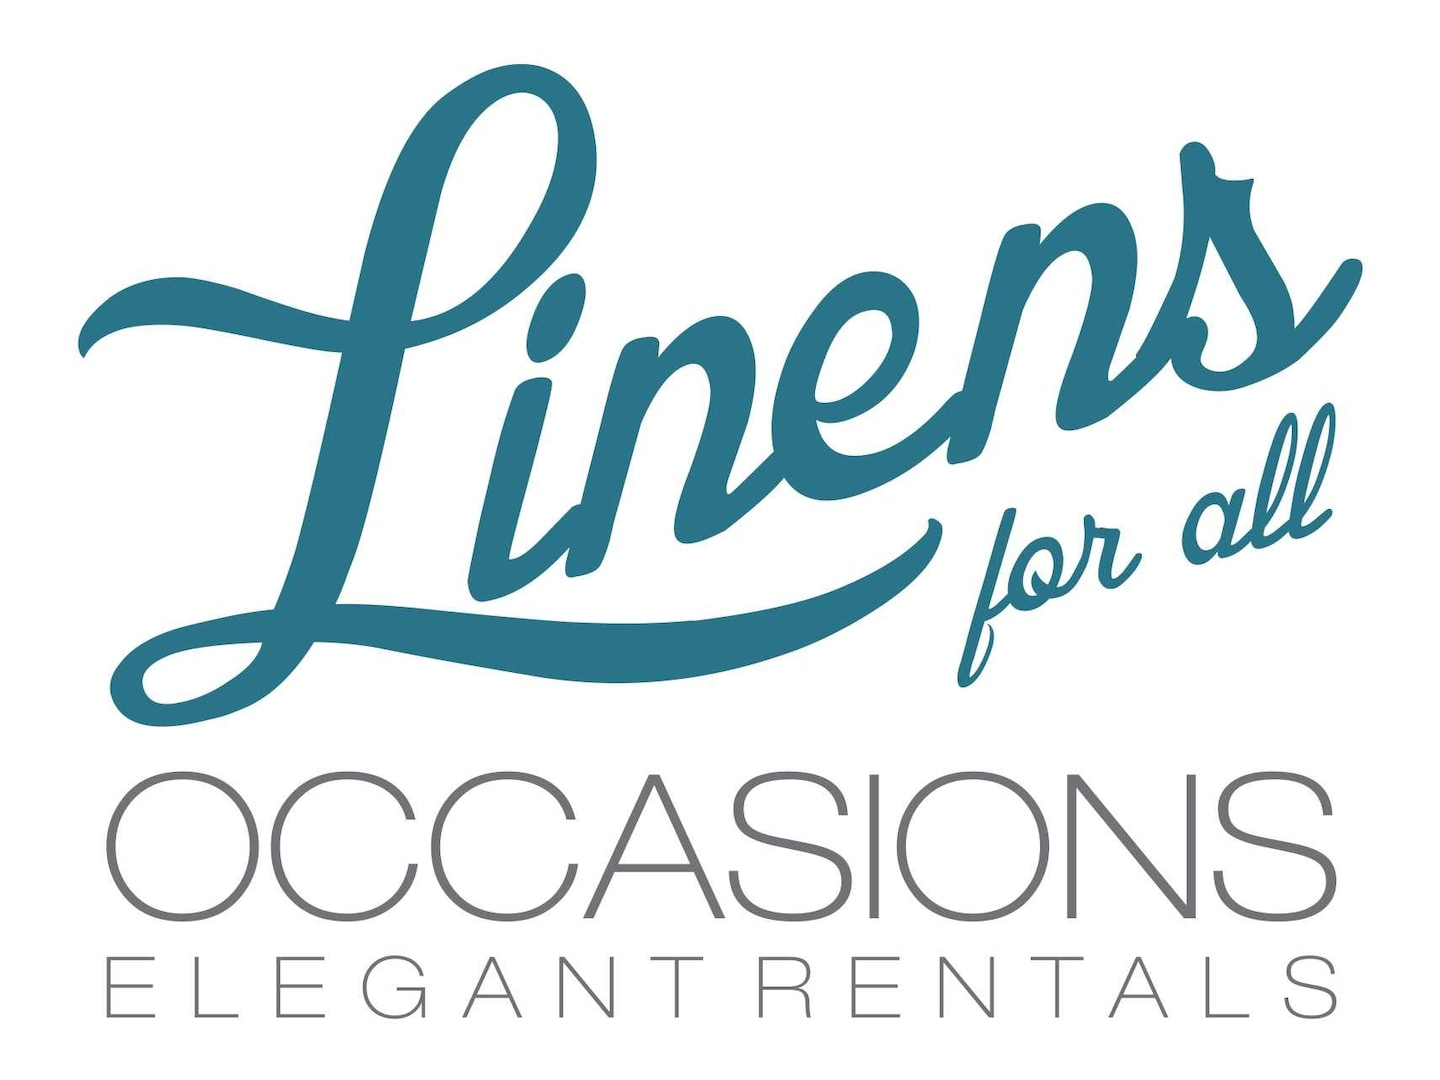 Linens For All Occasions